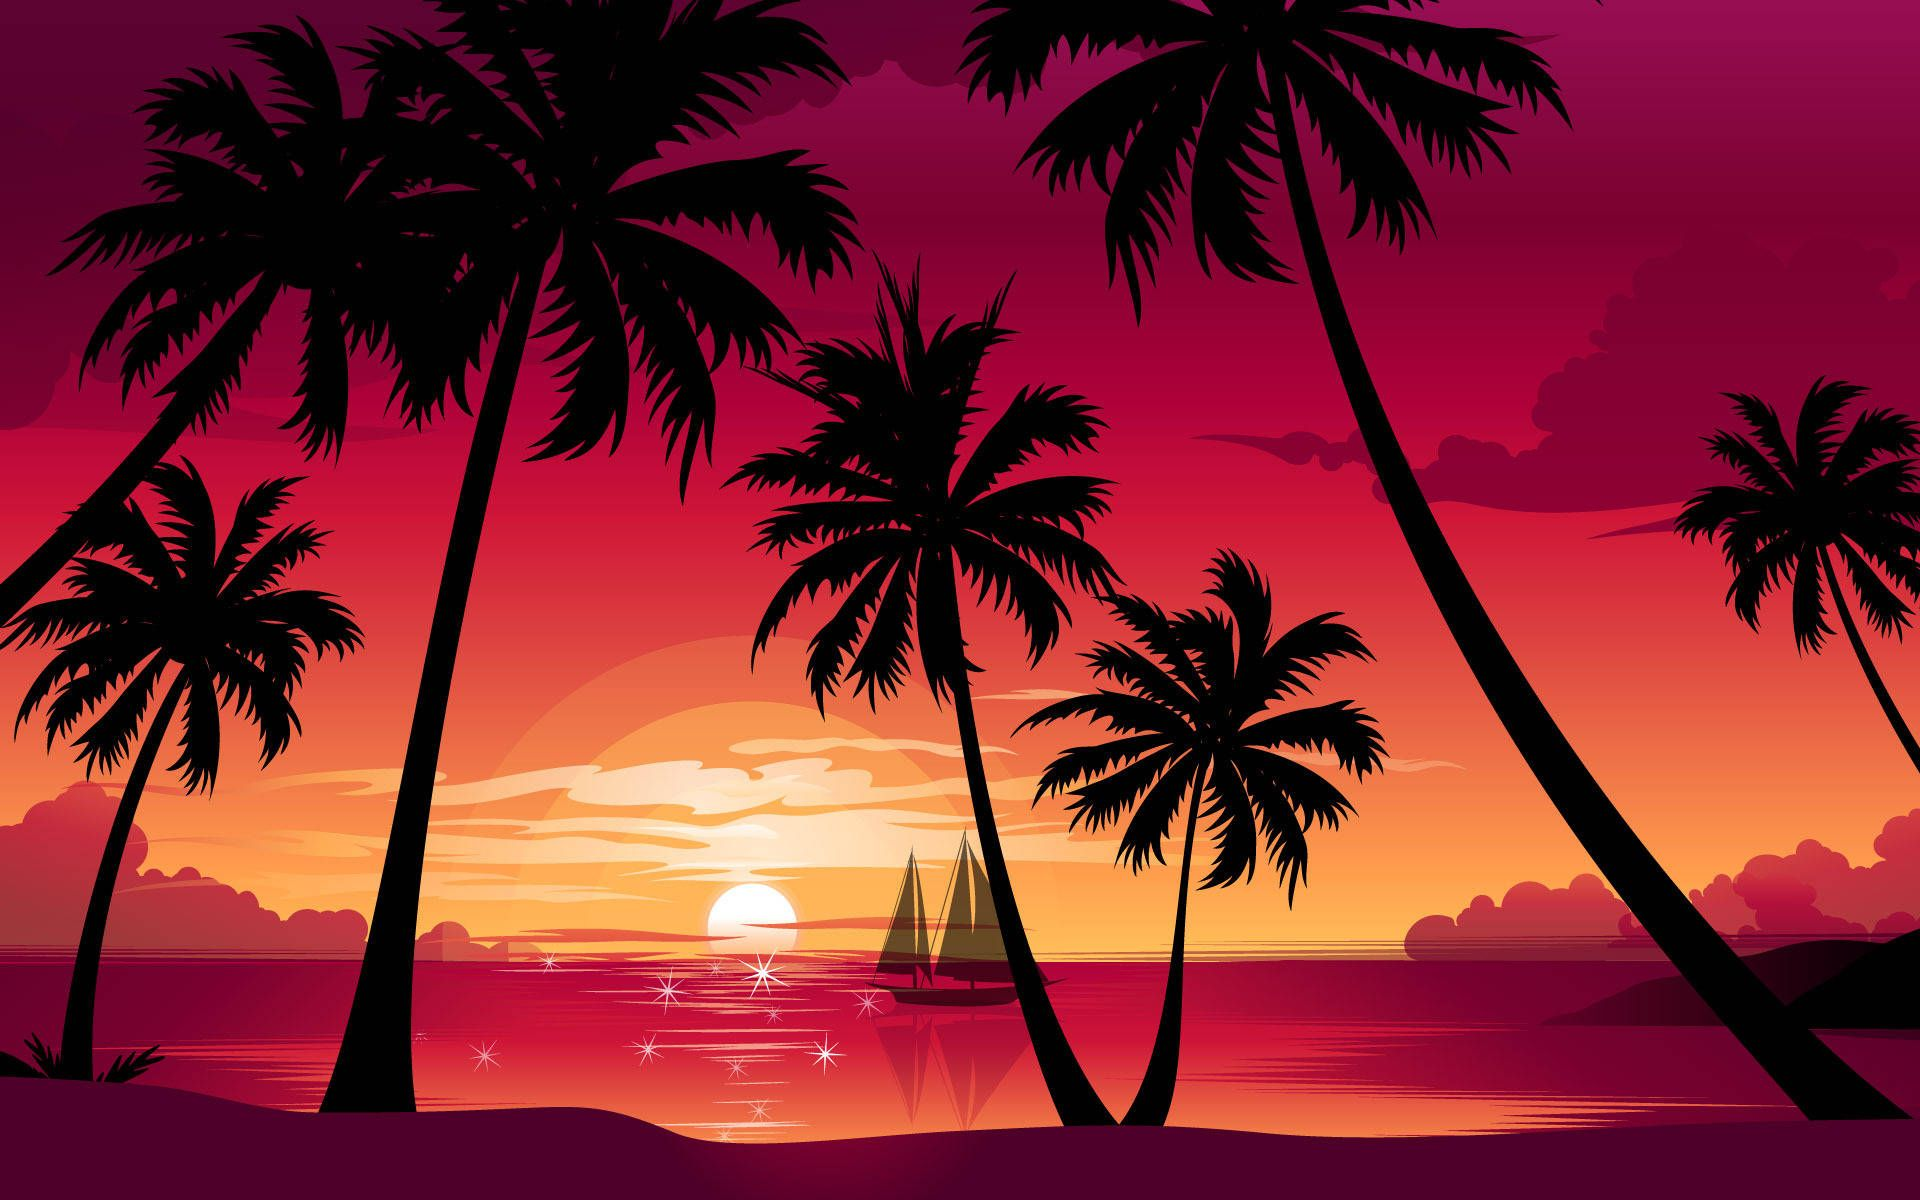 beach sunset with palm trees hd images 3 hd wallpapers planezenbeach sunset with palm trees hd images 3 hd wallpapers planezen com